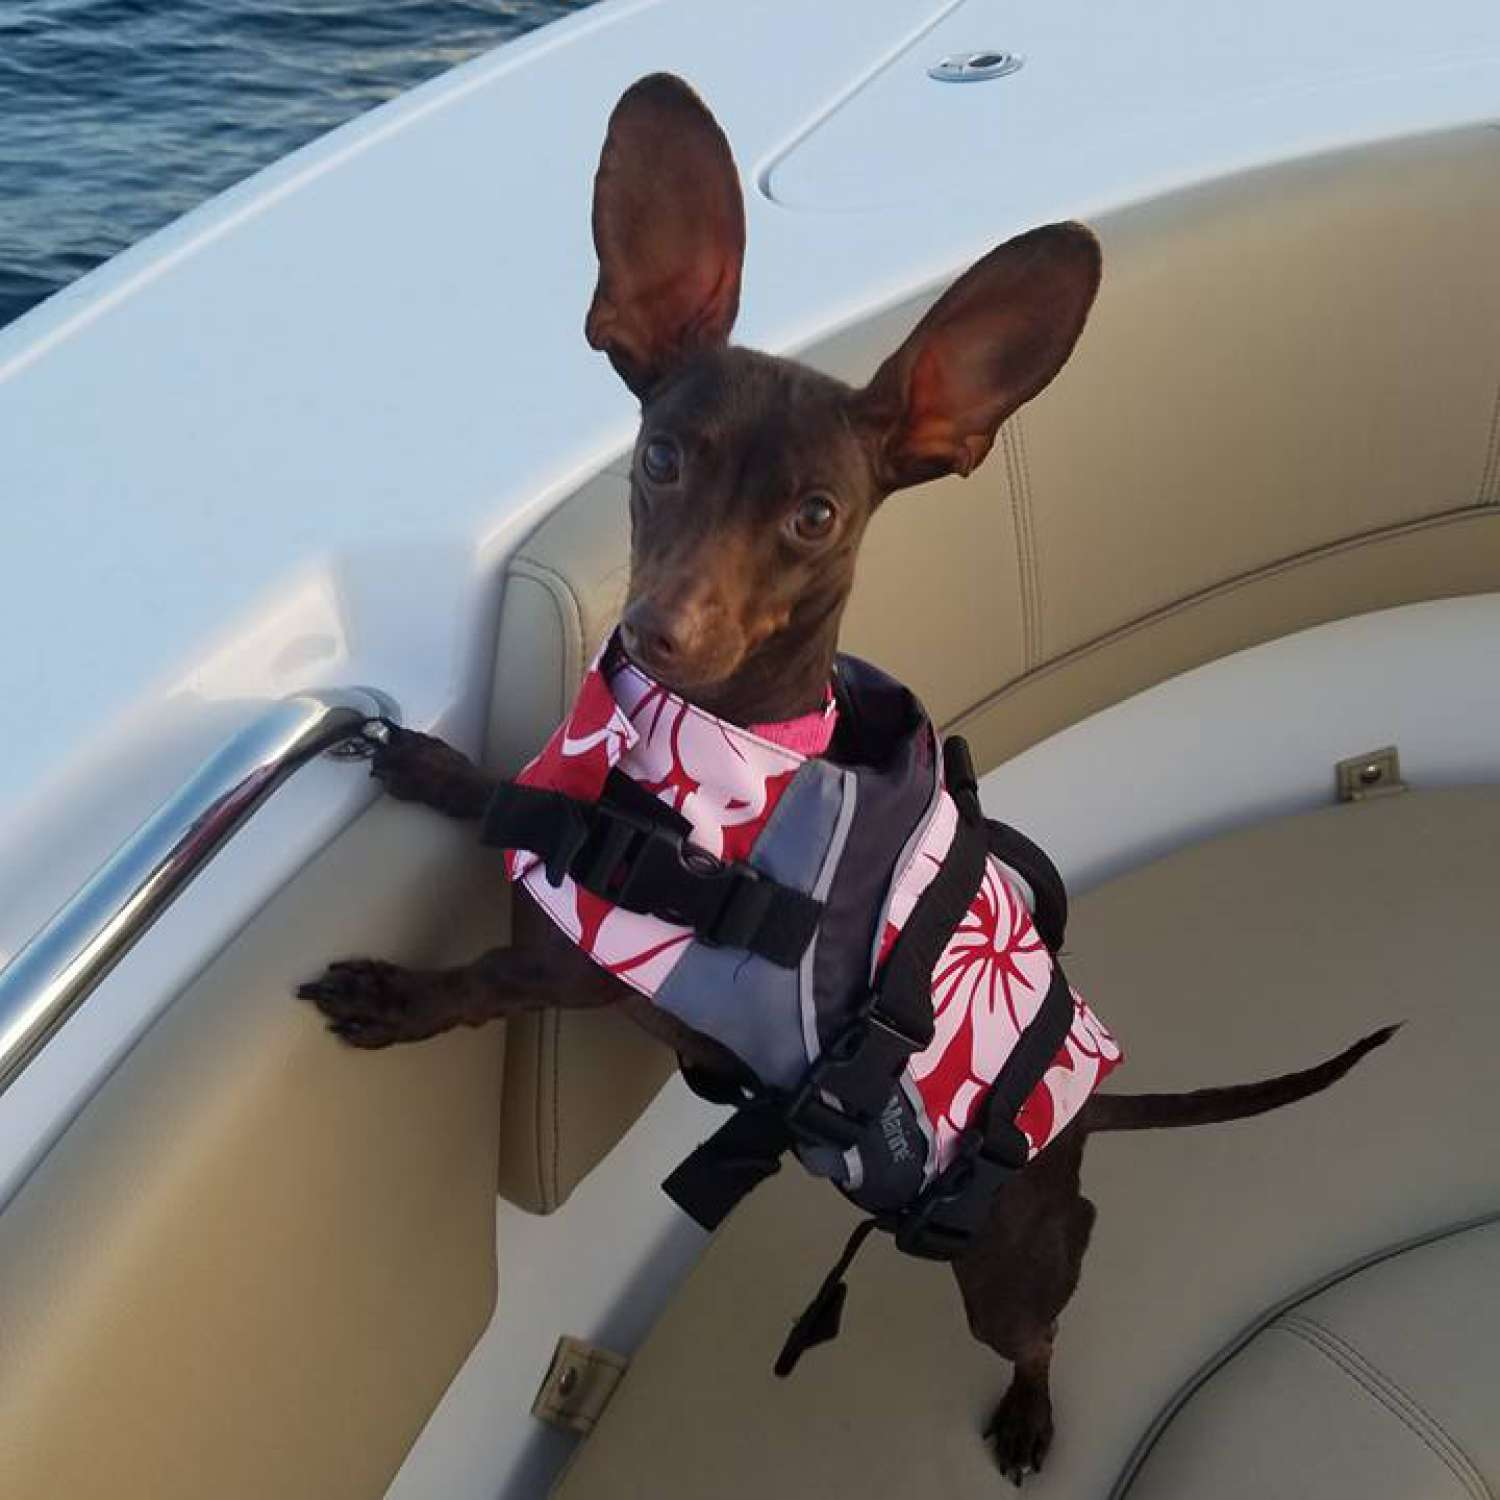 Title: Annabelle Enjoying The Maiden Voyage On The New Heritage 231 - On board their Sportsman Heritage 231 Center Console - Location: Chipley, Florida. Participating in the Photo Contest #SportsmanFebruary2017